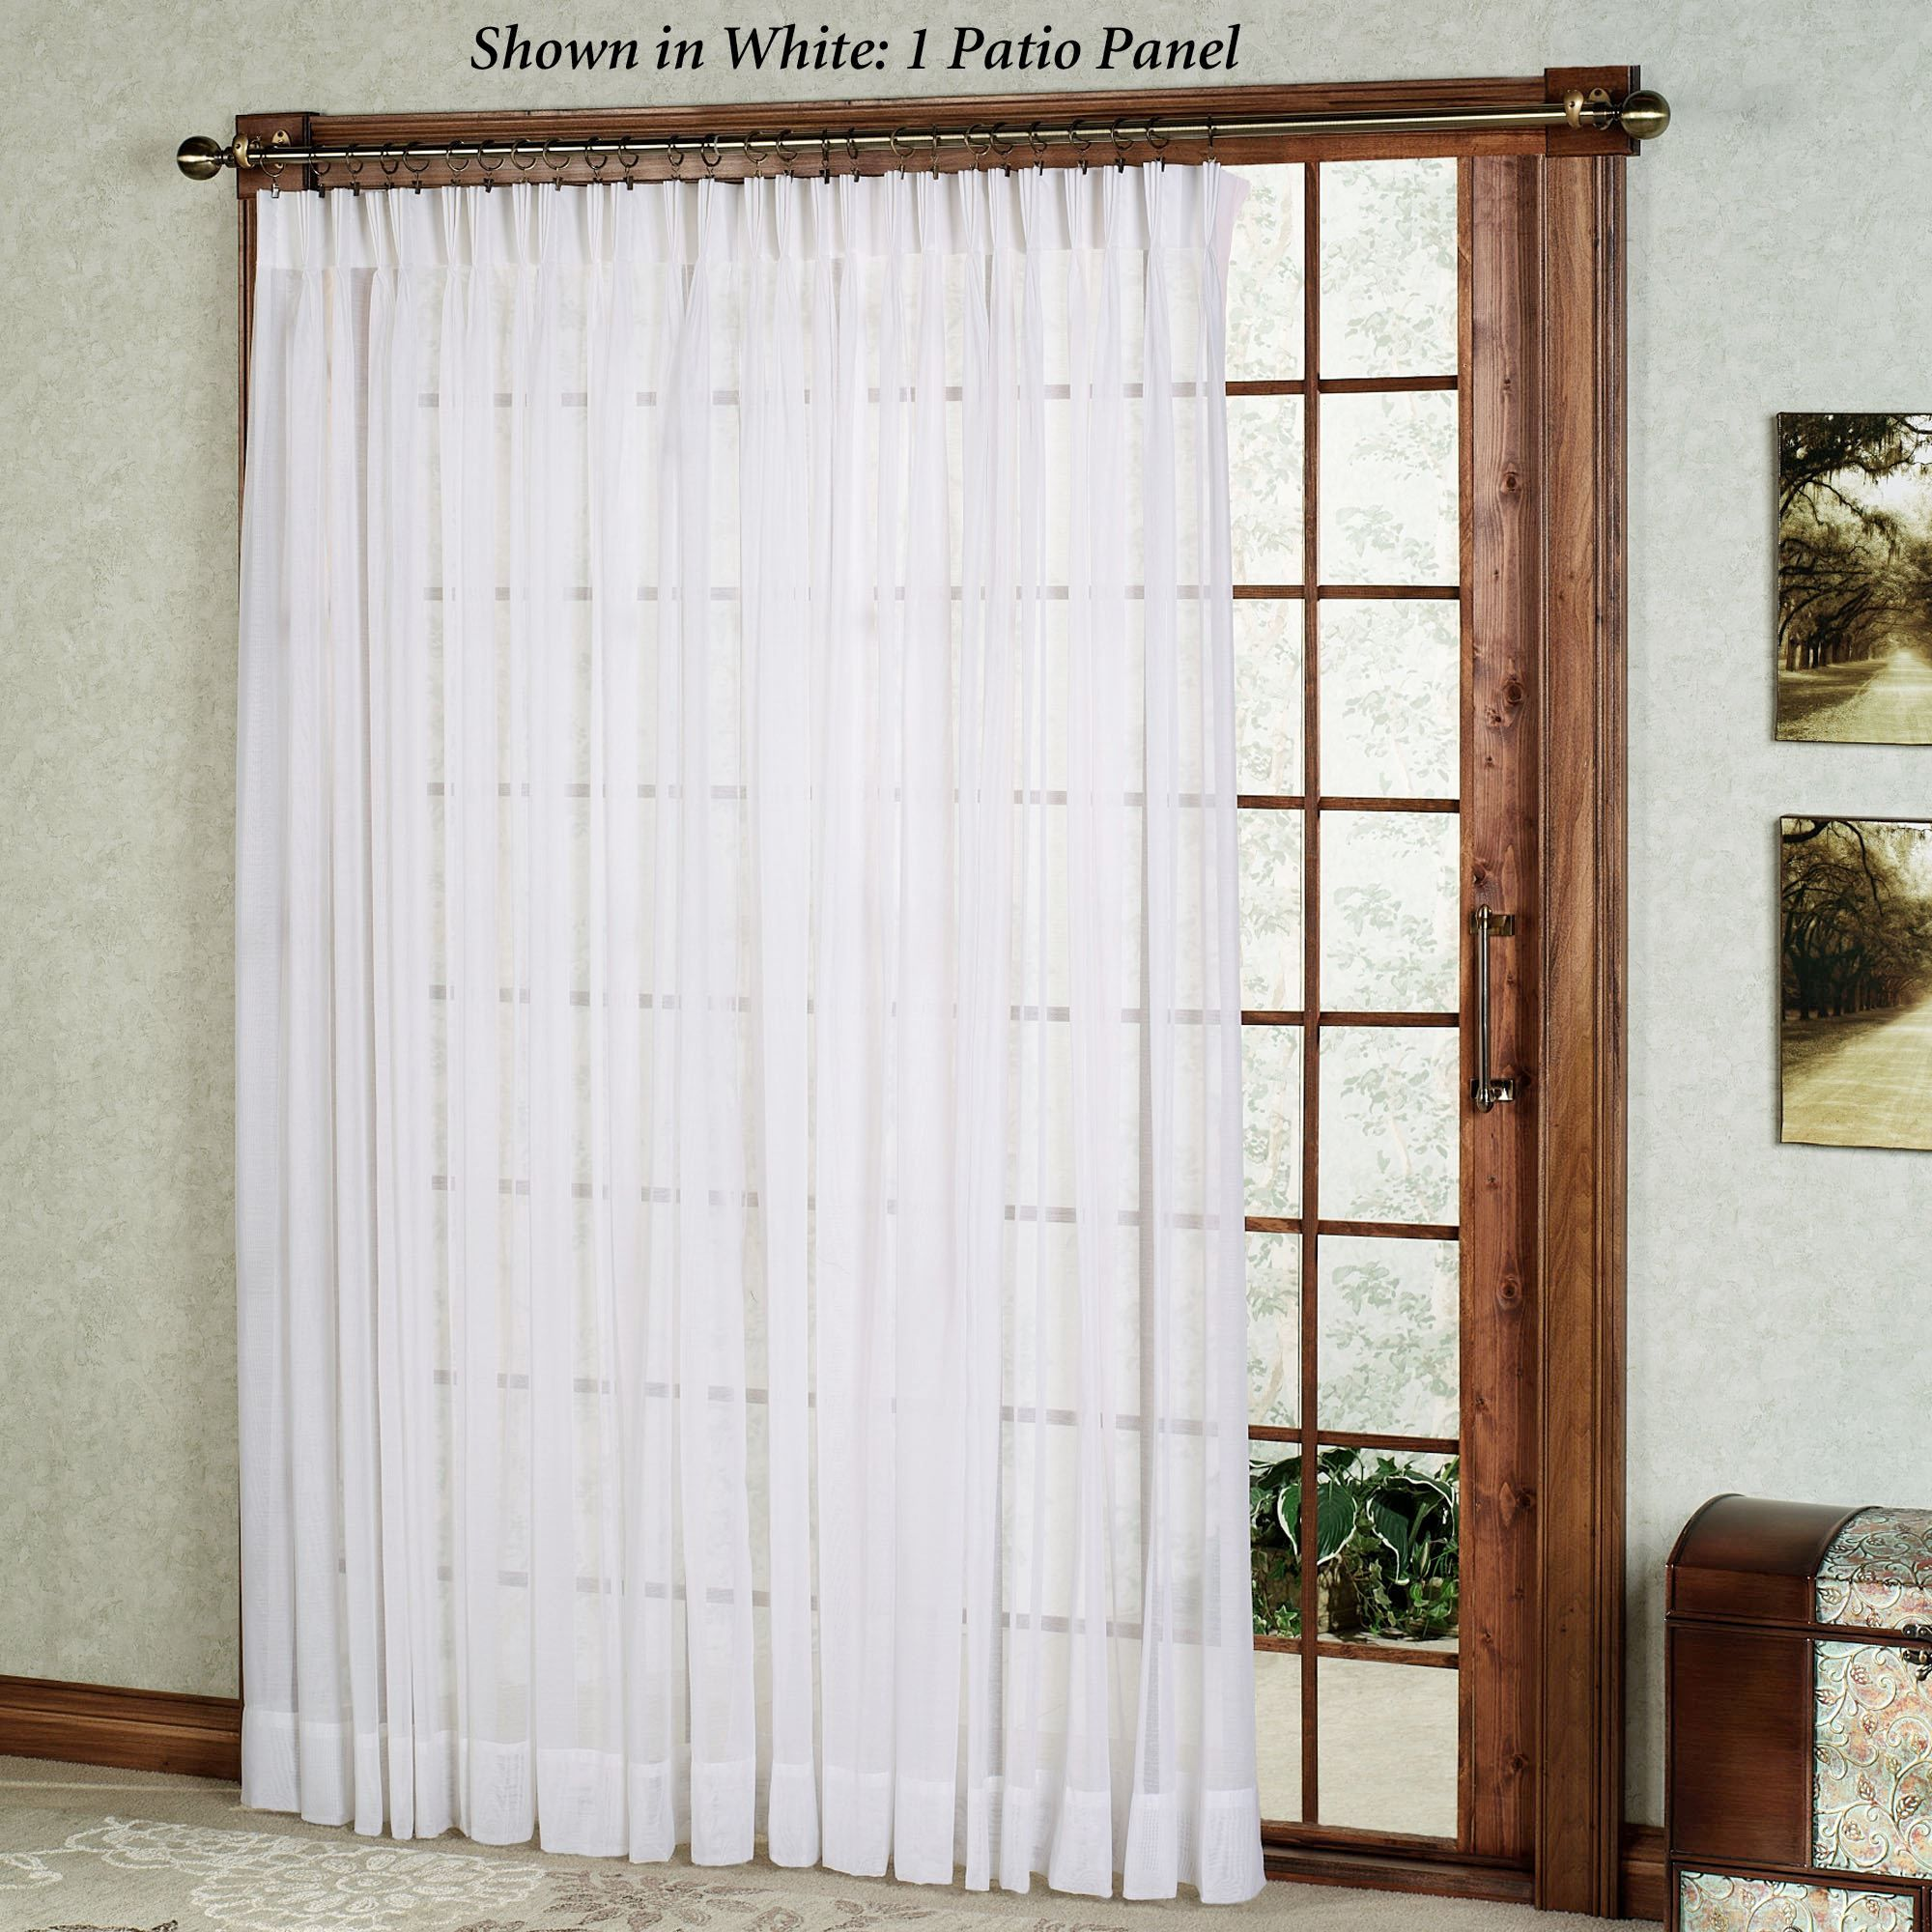 Check Out The Deal On Splendor Semi Sheer Batiste Pinch Pleat Patio Panel At Bedbathhome